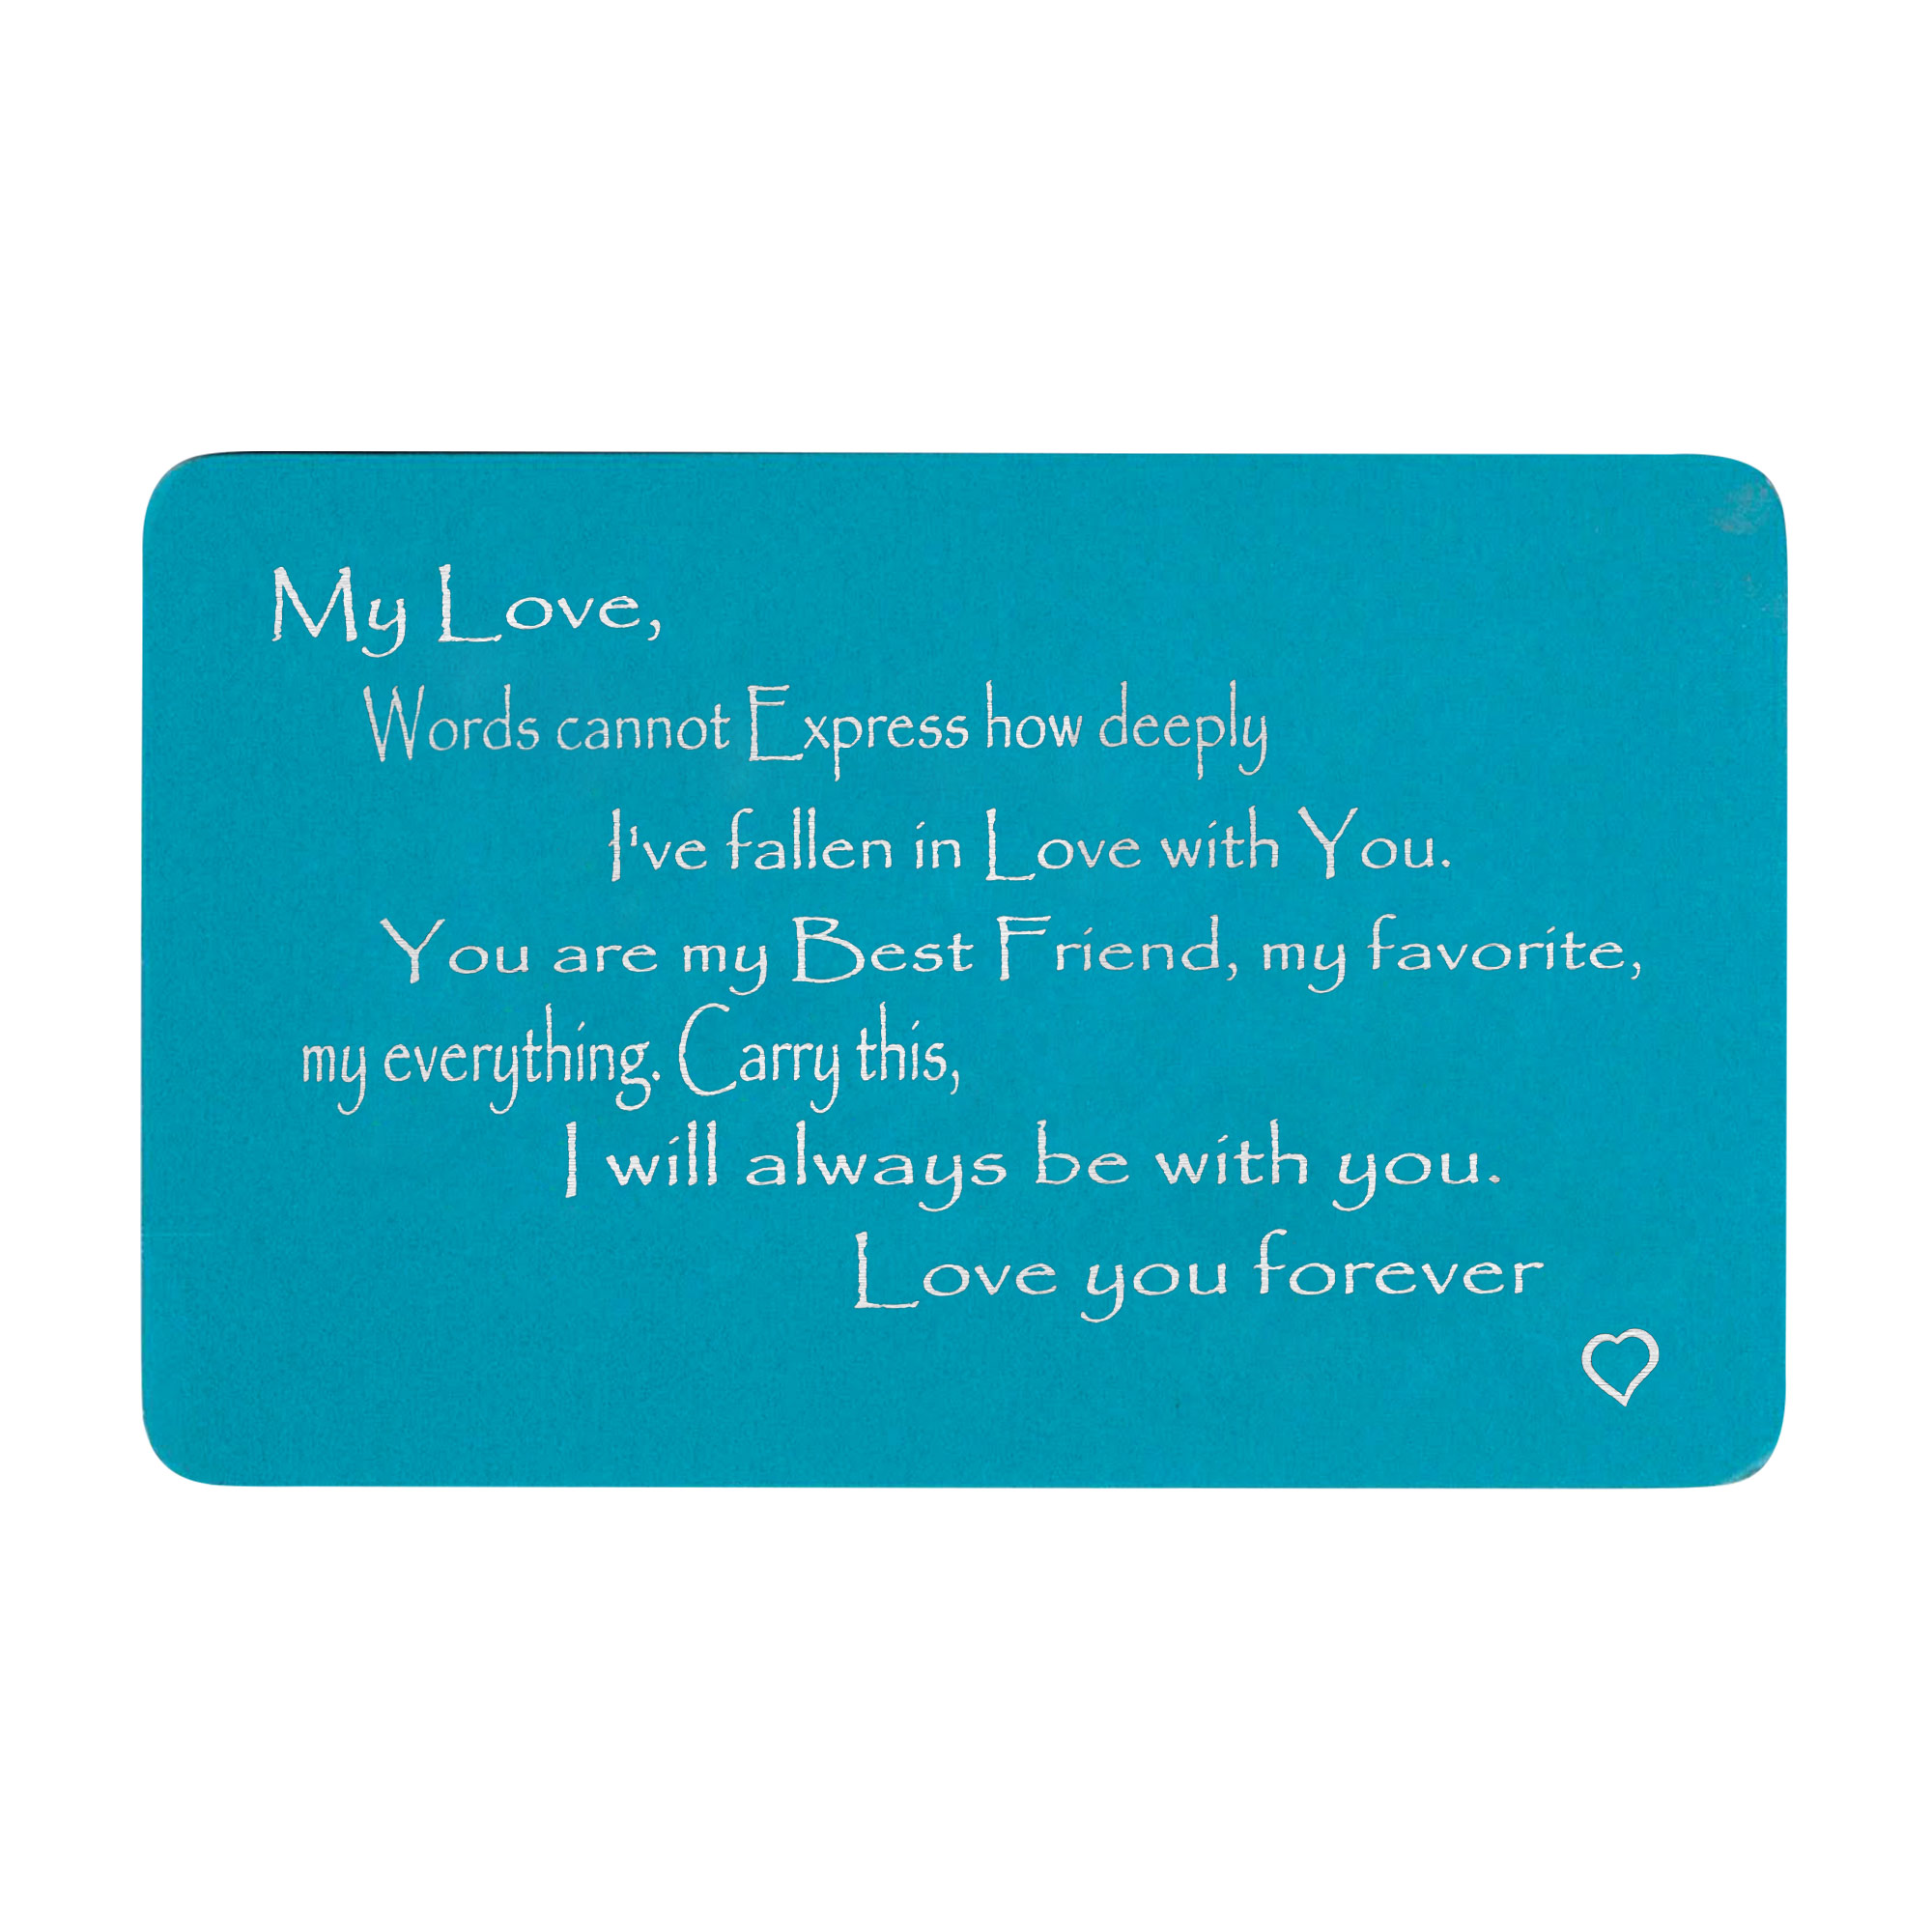 Anodized Aluminum Blue Words Cannot Express Love You Forever Personalized Text Engrave Metal Wallet Mini Love Insert Gift Note Card